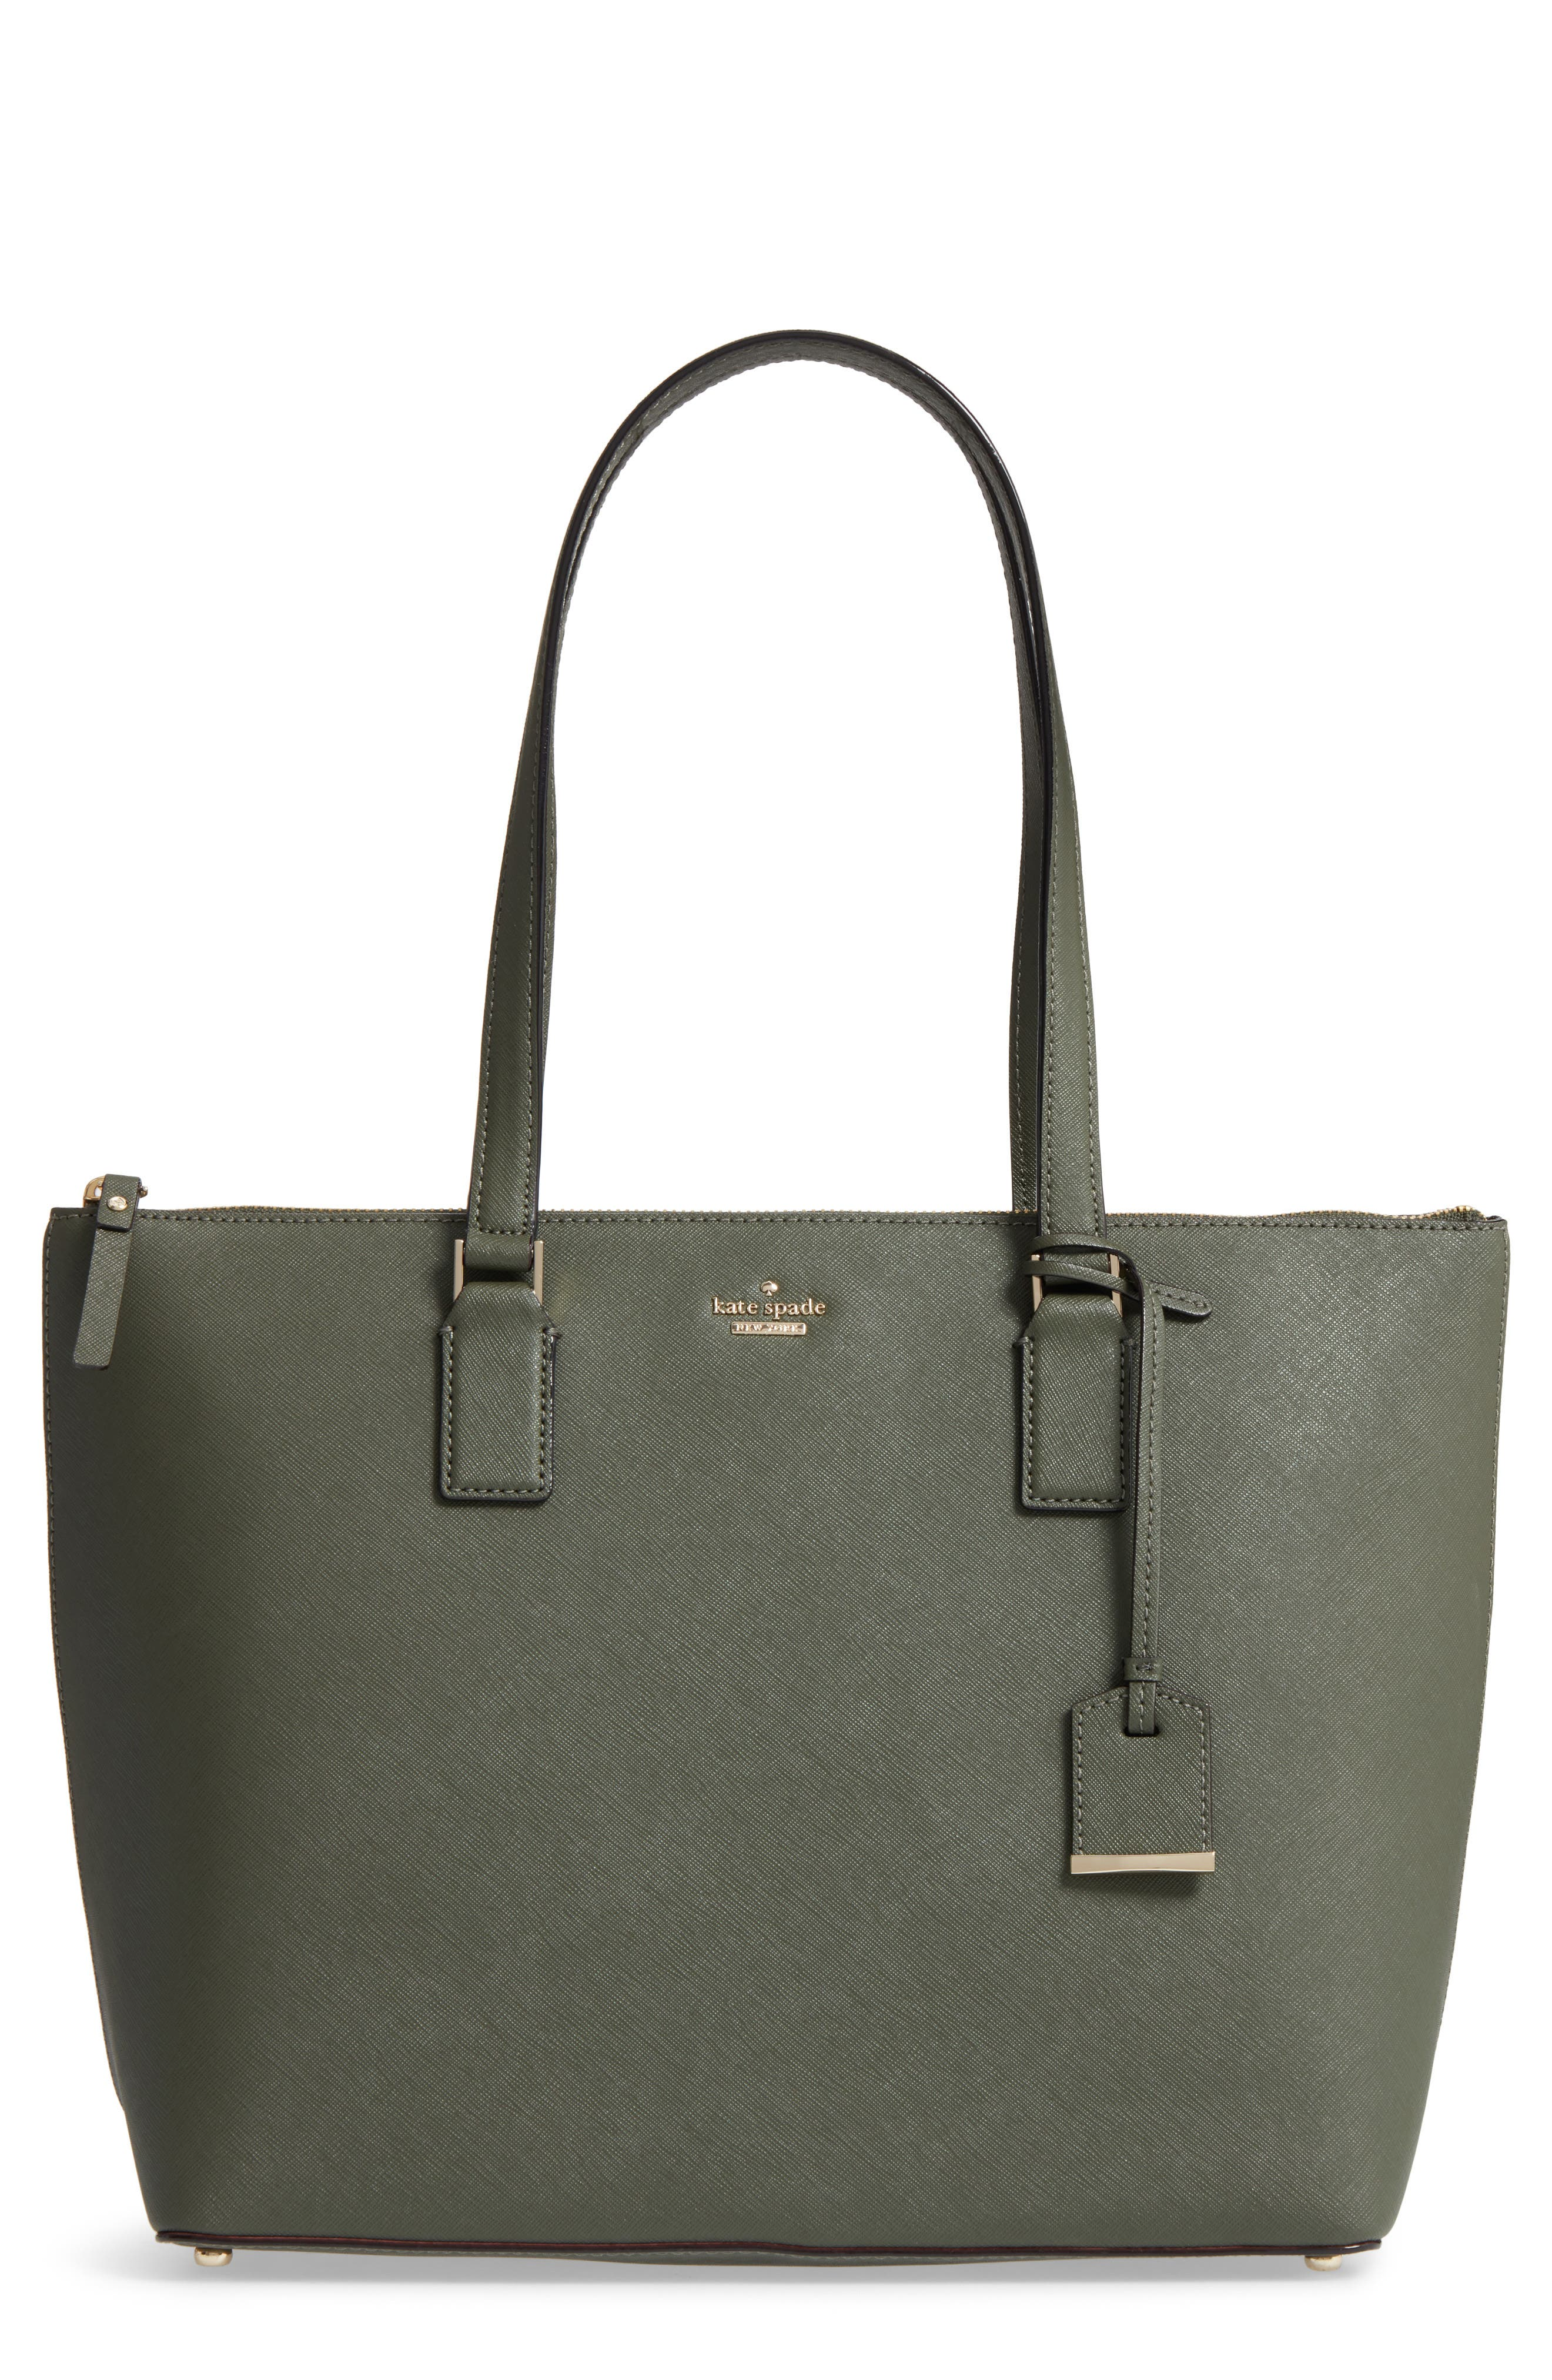 'cameron street - lucie' tote,                             Main thumbnail 1, color,                             316